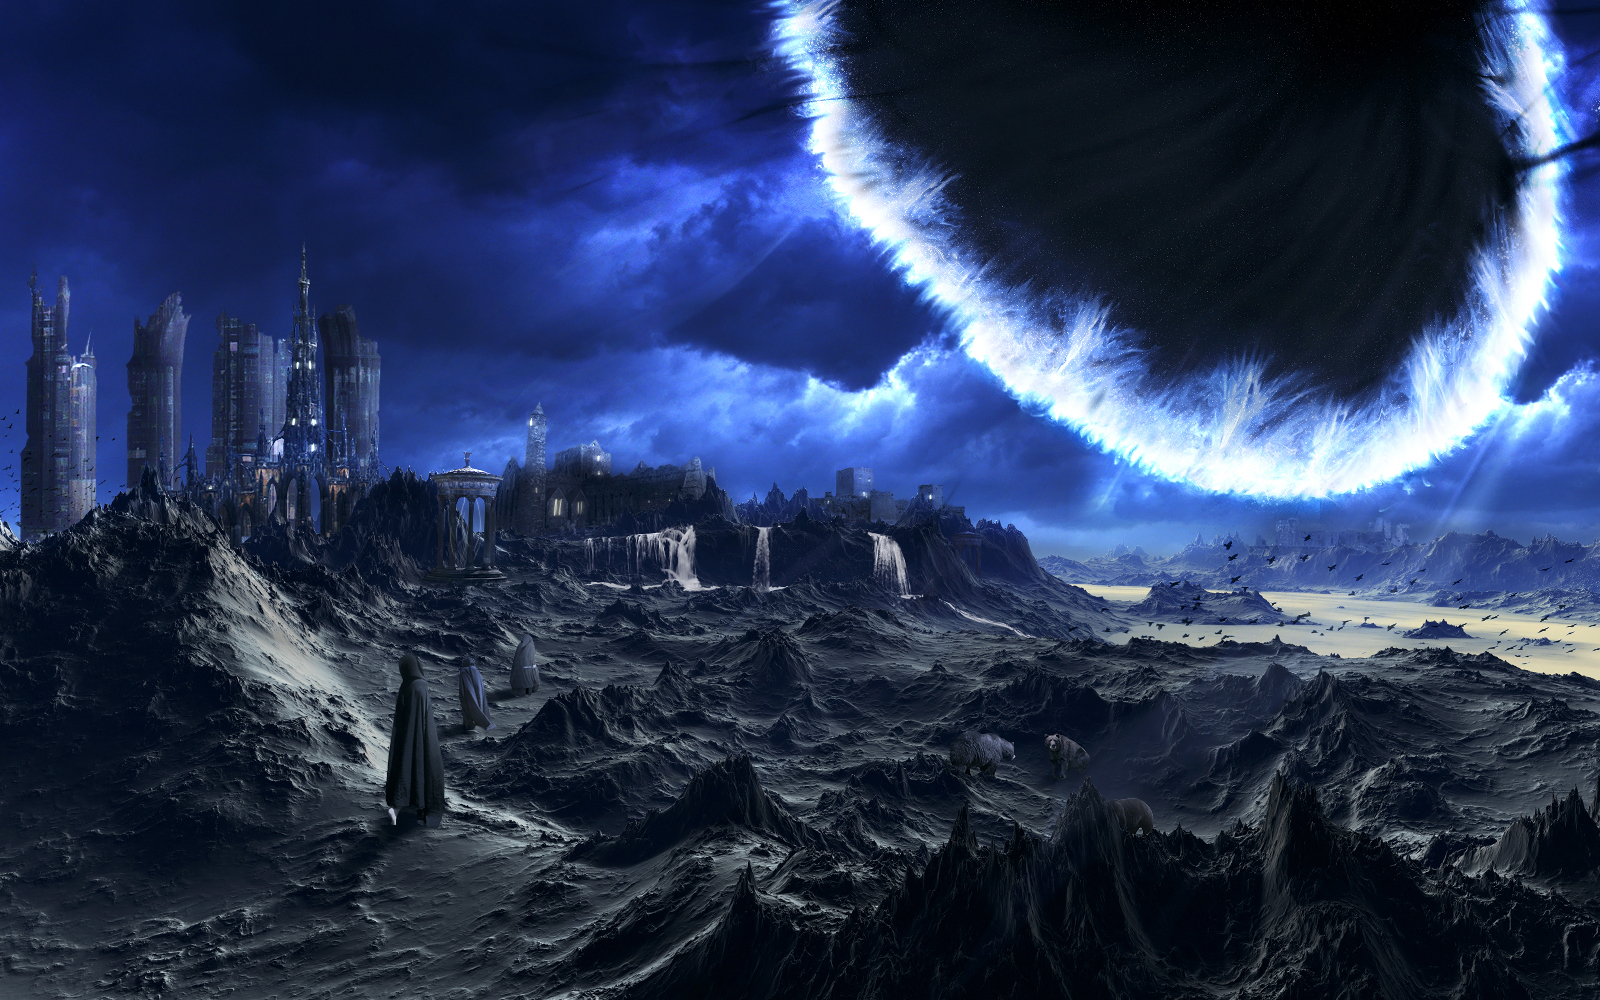 High definition 3D Animated Wallpapers For Desktop | Free 3D wallpapers ~ The Incredible World ...